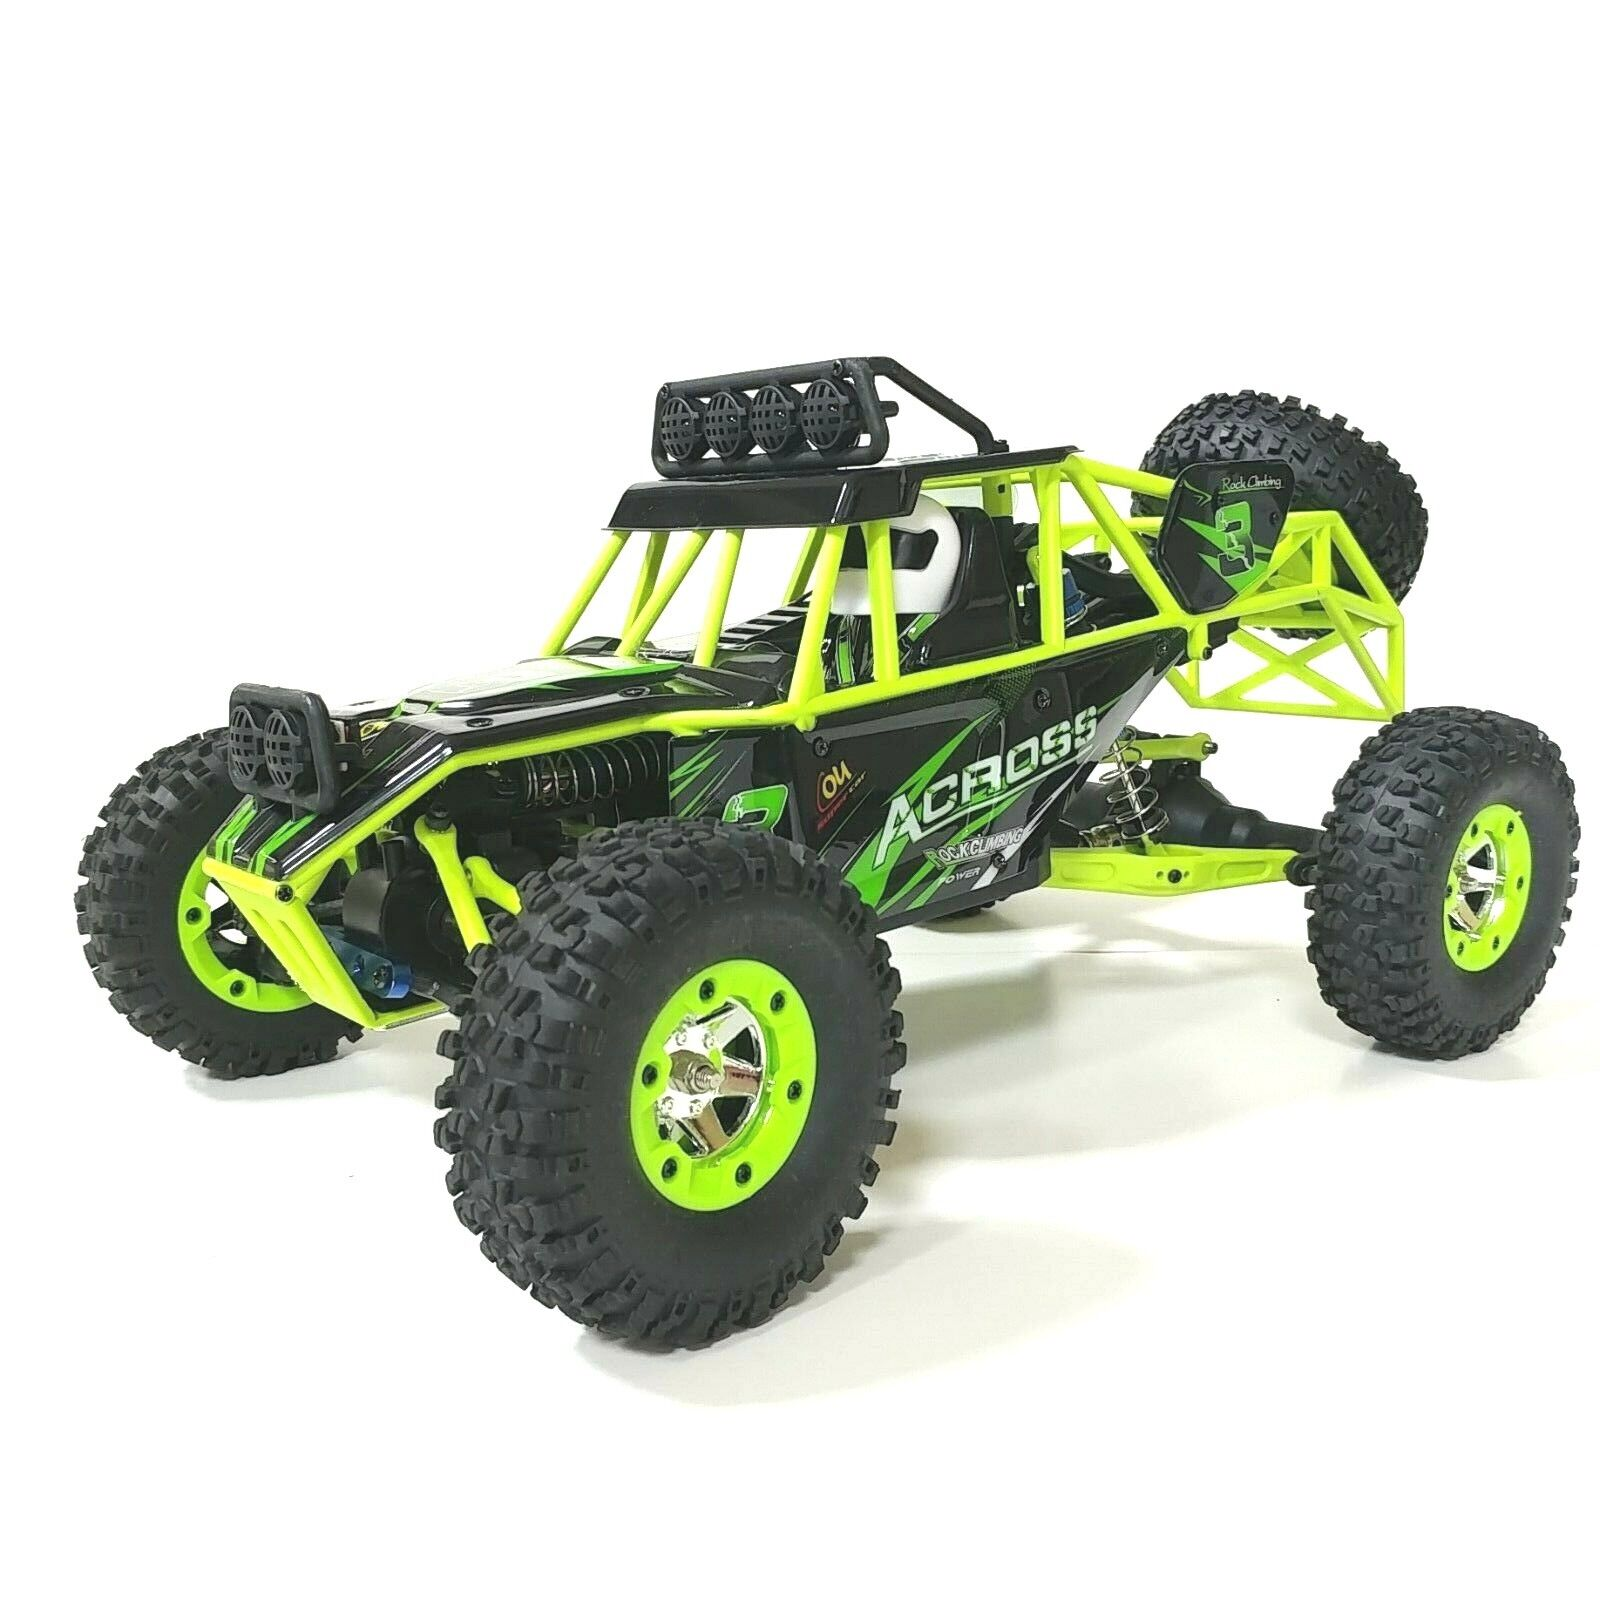 Wltoys 12428 4WD RTR Rock Crawler/racer. FREE ADDITIONAL LED BAR. USA Dealer. - $84.95